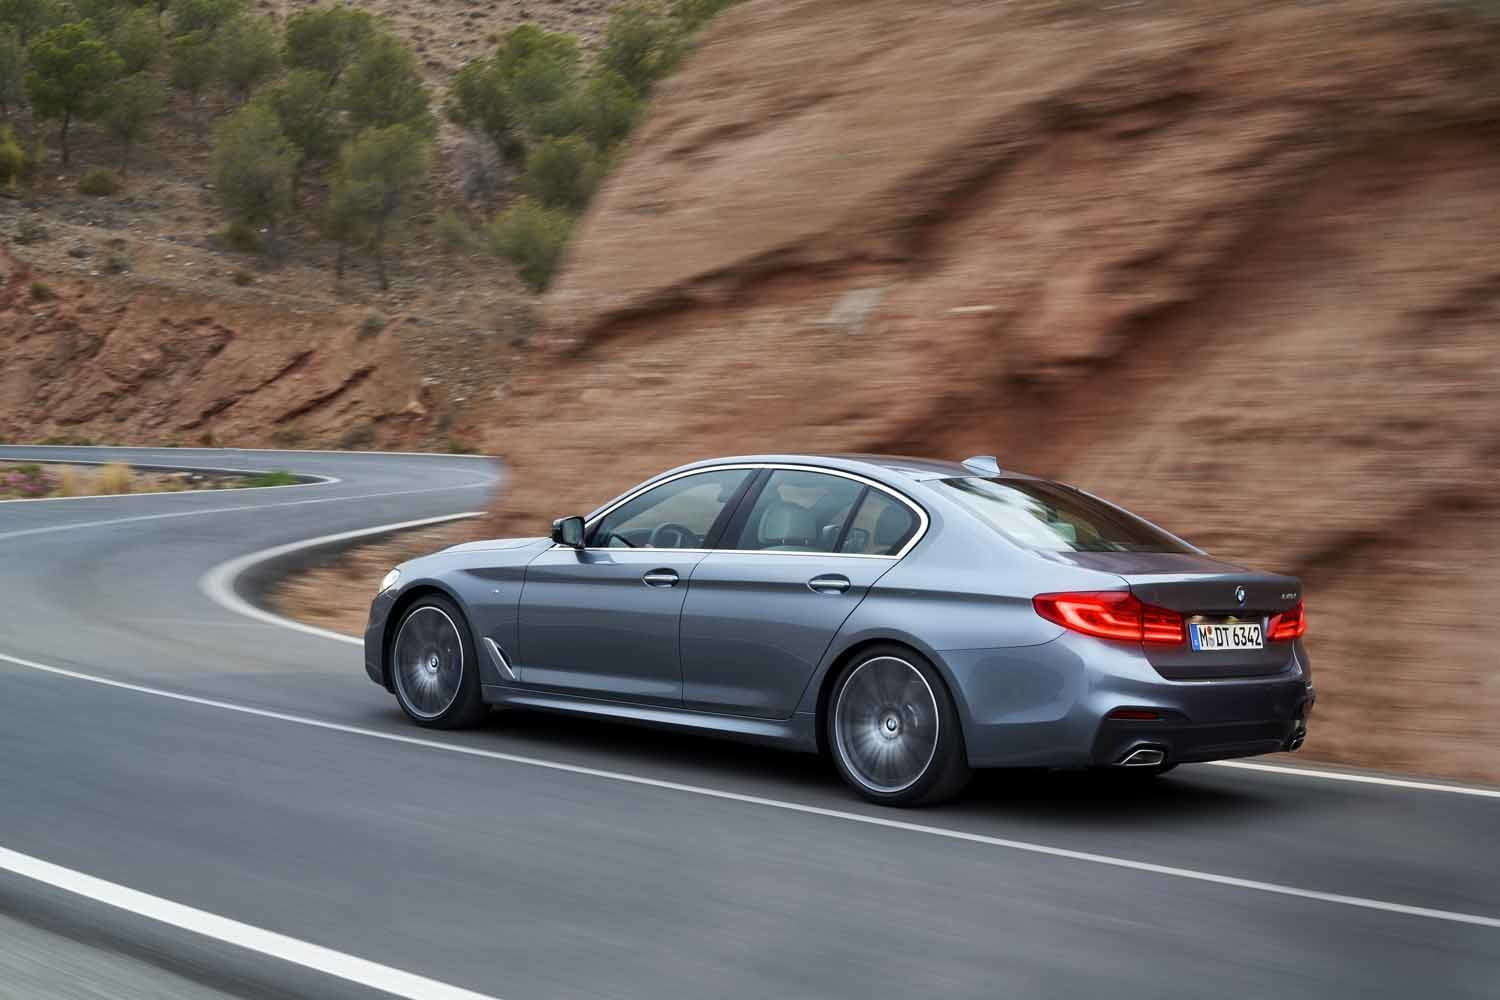 2017 bmw 5 series news pictures performance specs 24